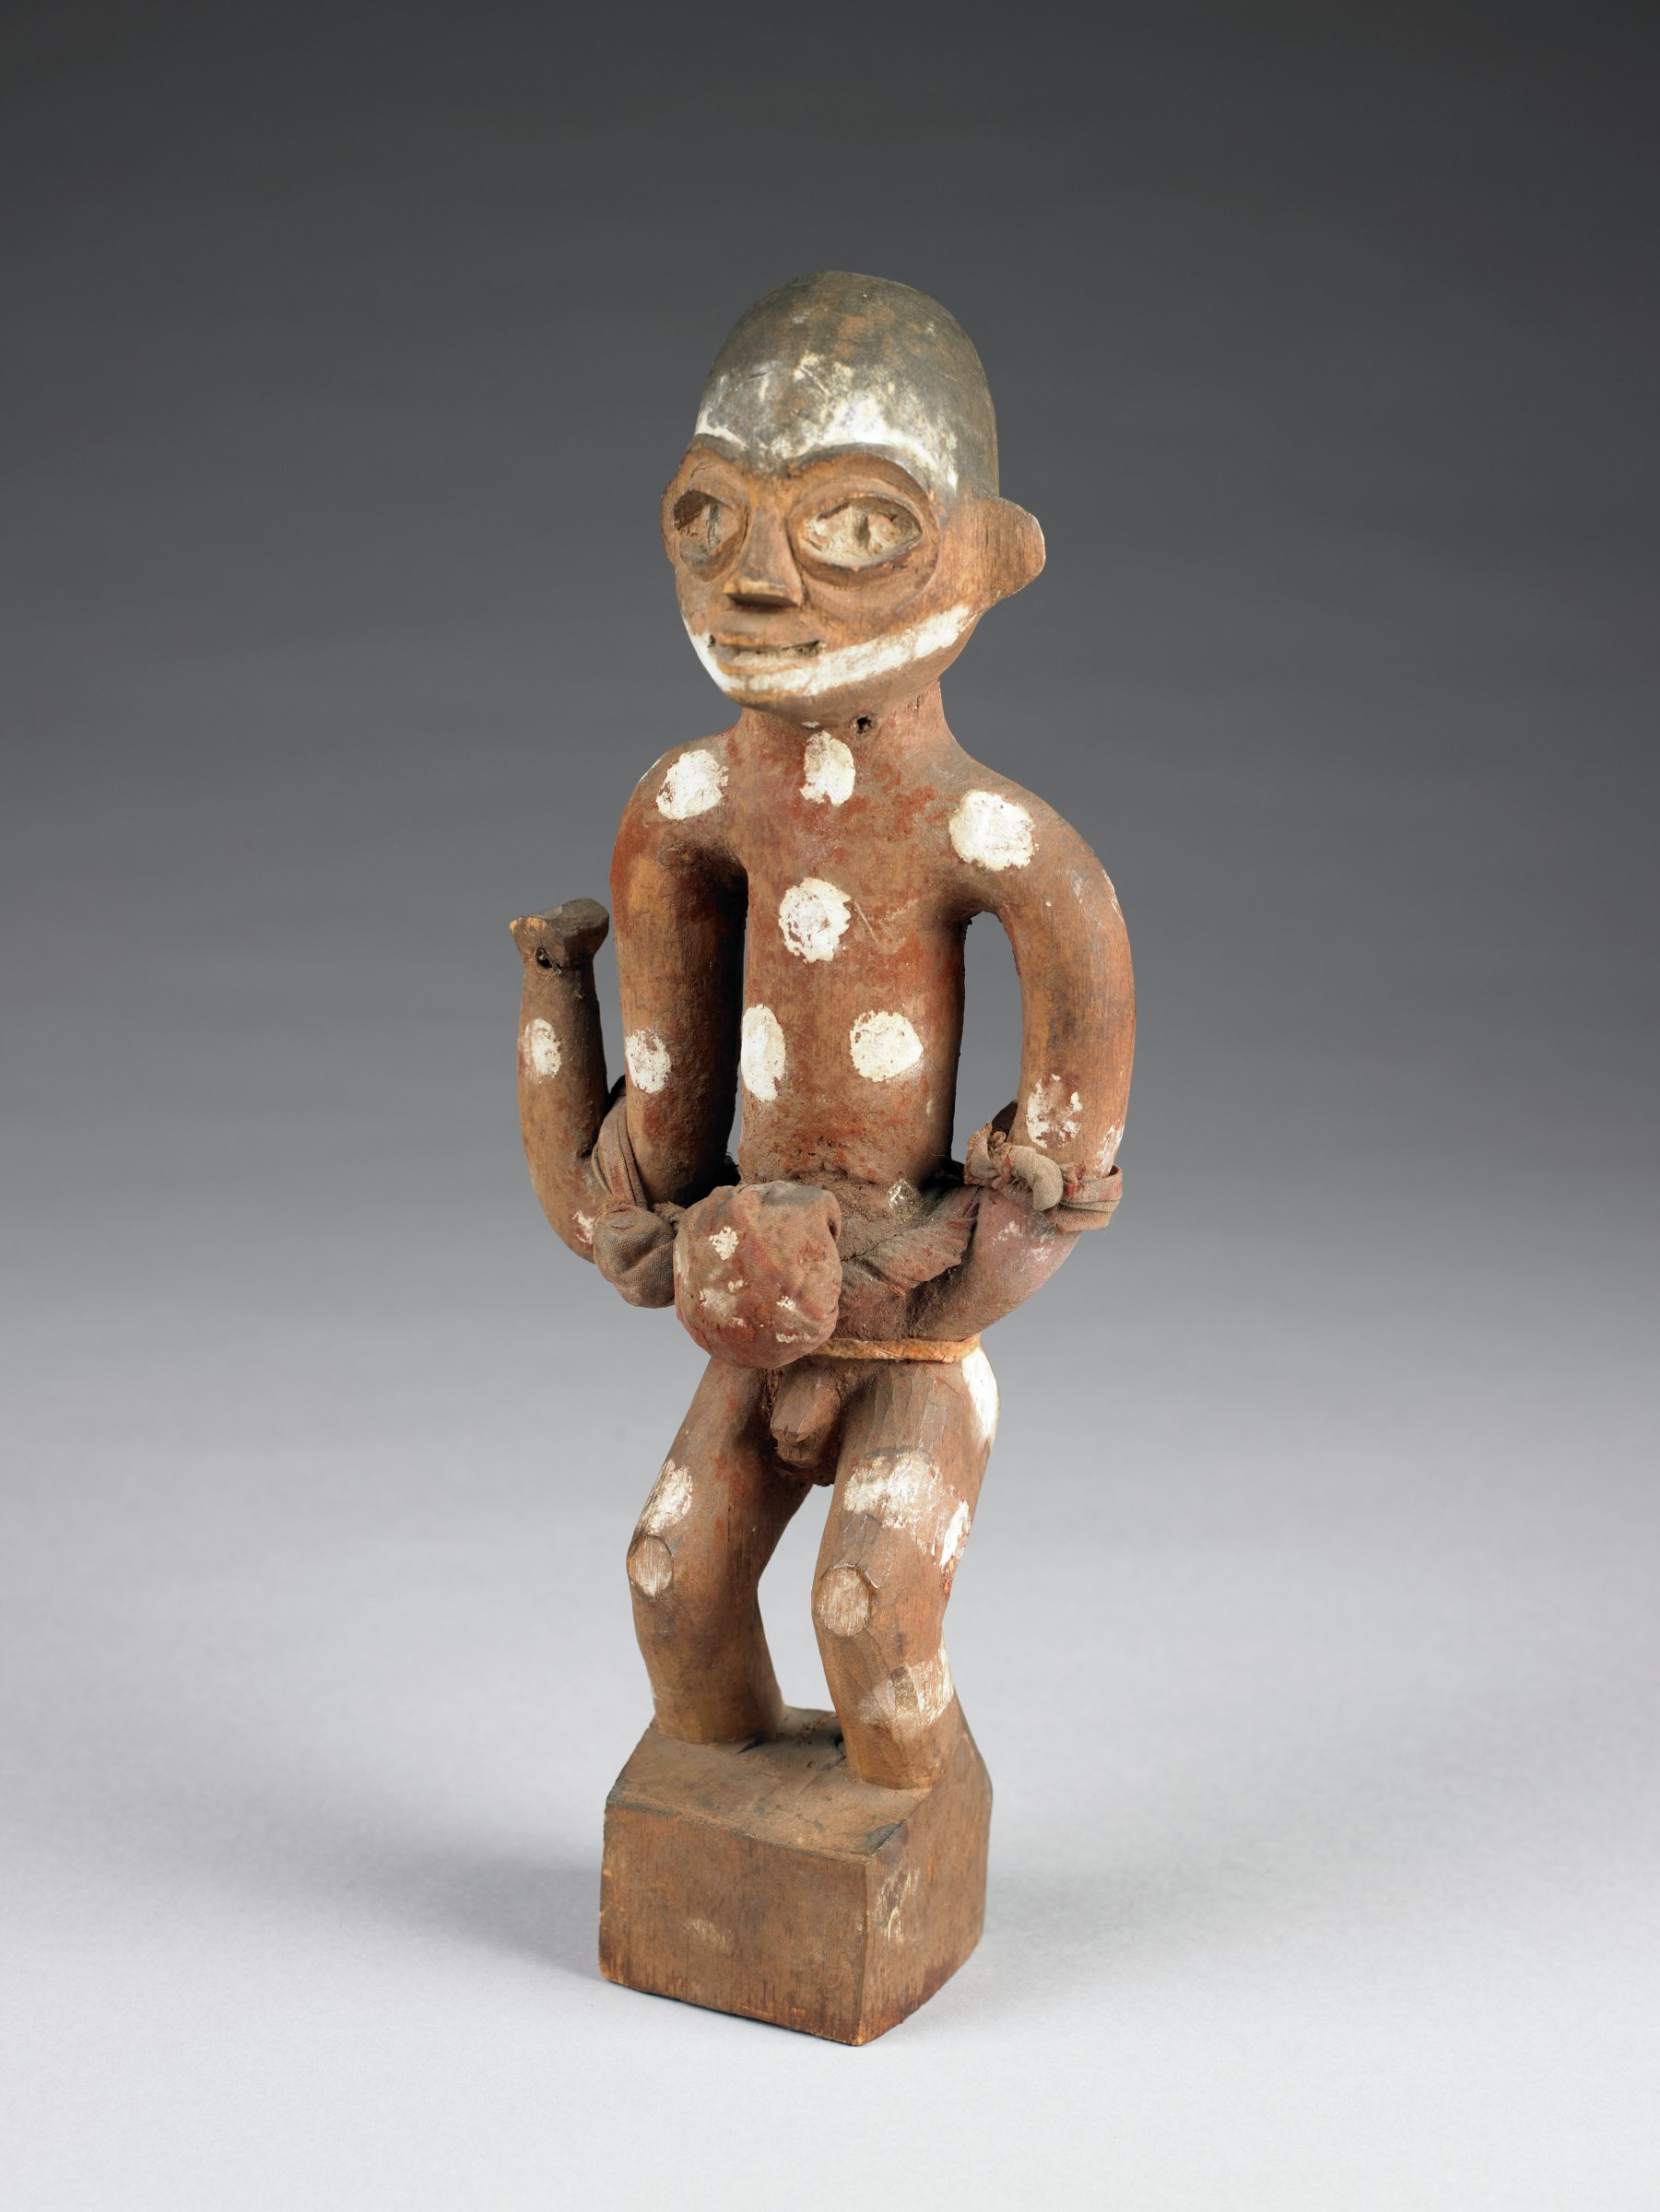 Standing male figure with flexed knees and solid block for feet; one hand on hip, one arm raised with elbow bent (hand broken off). Heart-shaped face with thick rims around eyes. Packets of medicinal material wrapped in fabric on abdomen and elbows. Surface colored with base of reddish-brown pigment; large white spots of pigment on body and white marks on face